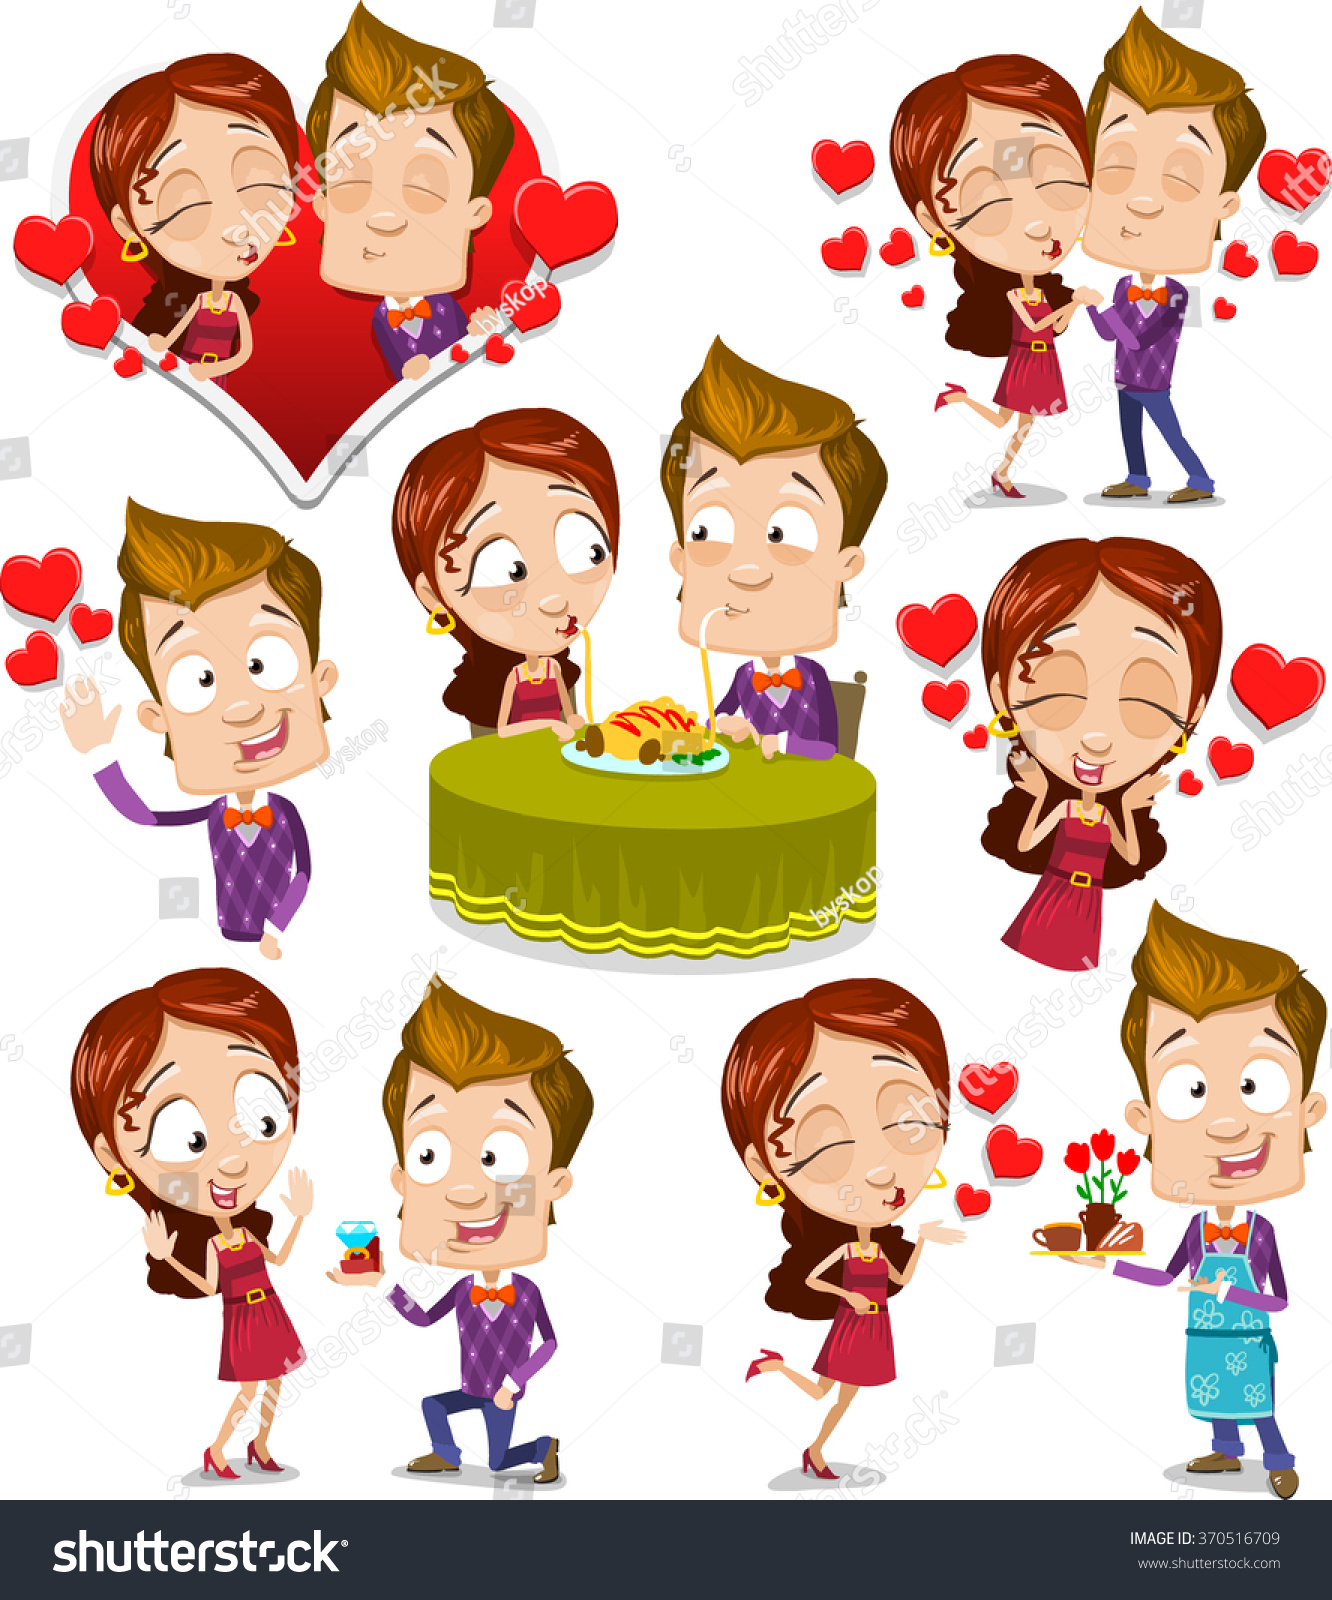 Cartoon Characters Kissing Each Other : Cartoon character vector set of young couple kissing